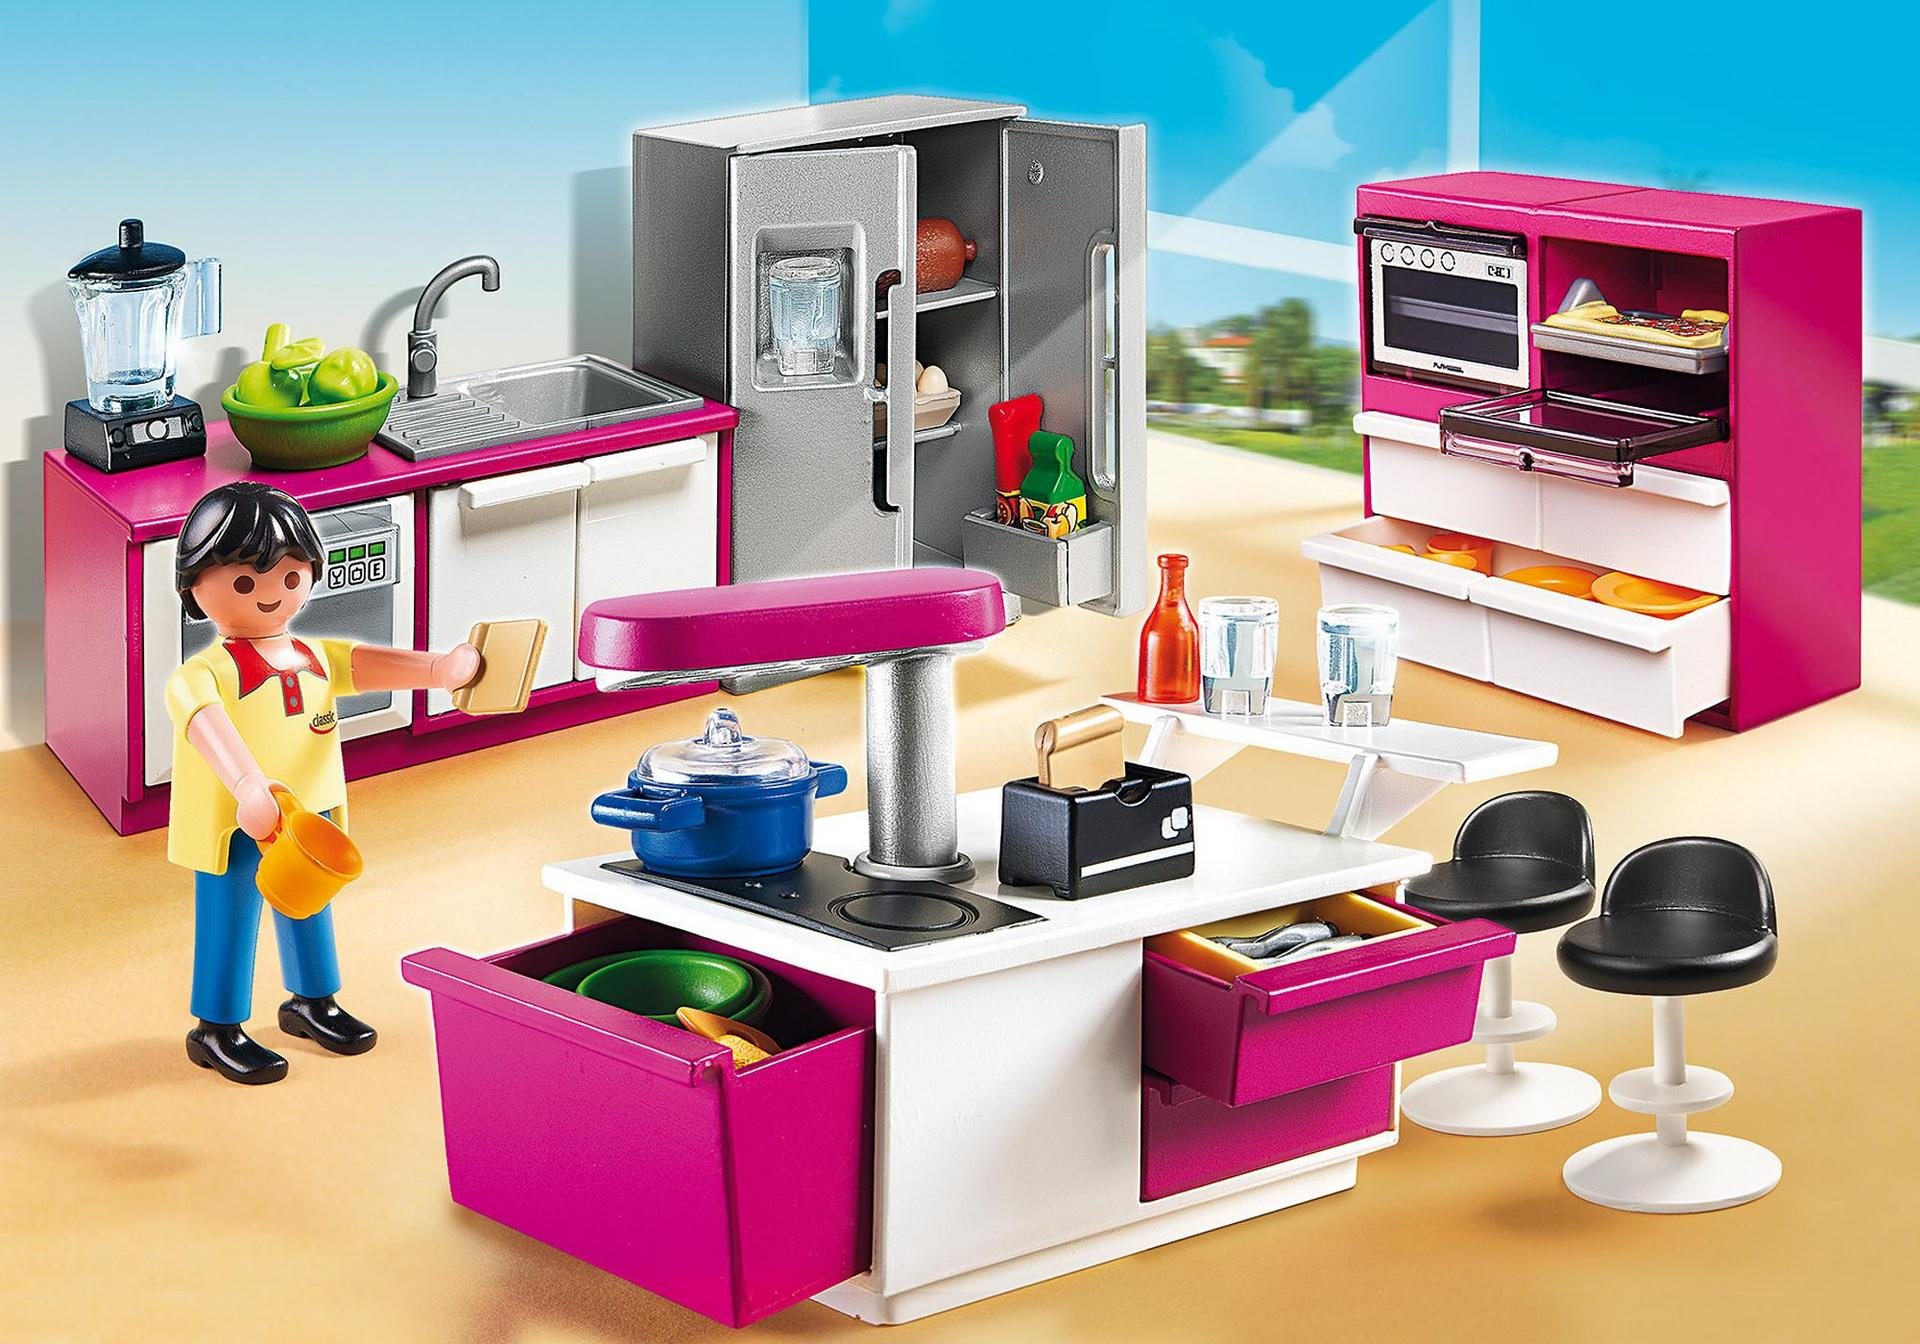 Awesome Maison Moderne De Luxe Playmobil Contemporary - Home ...